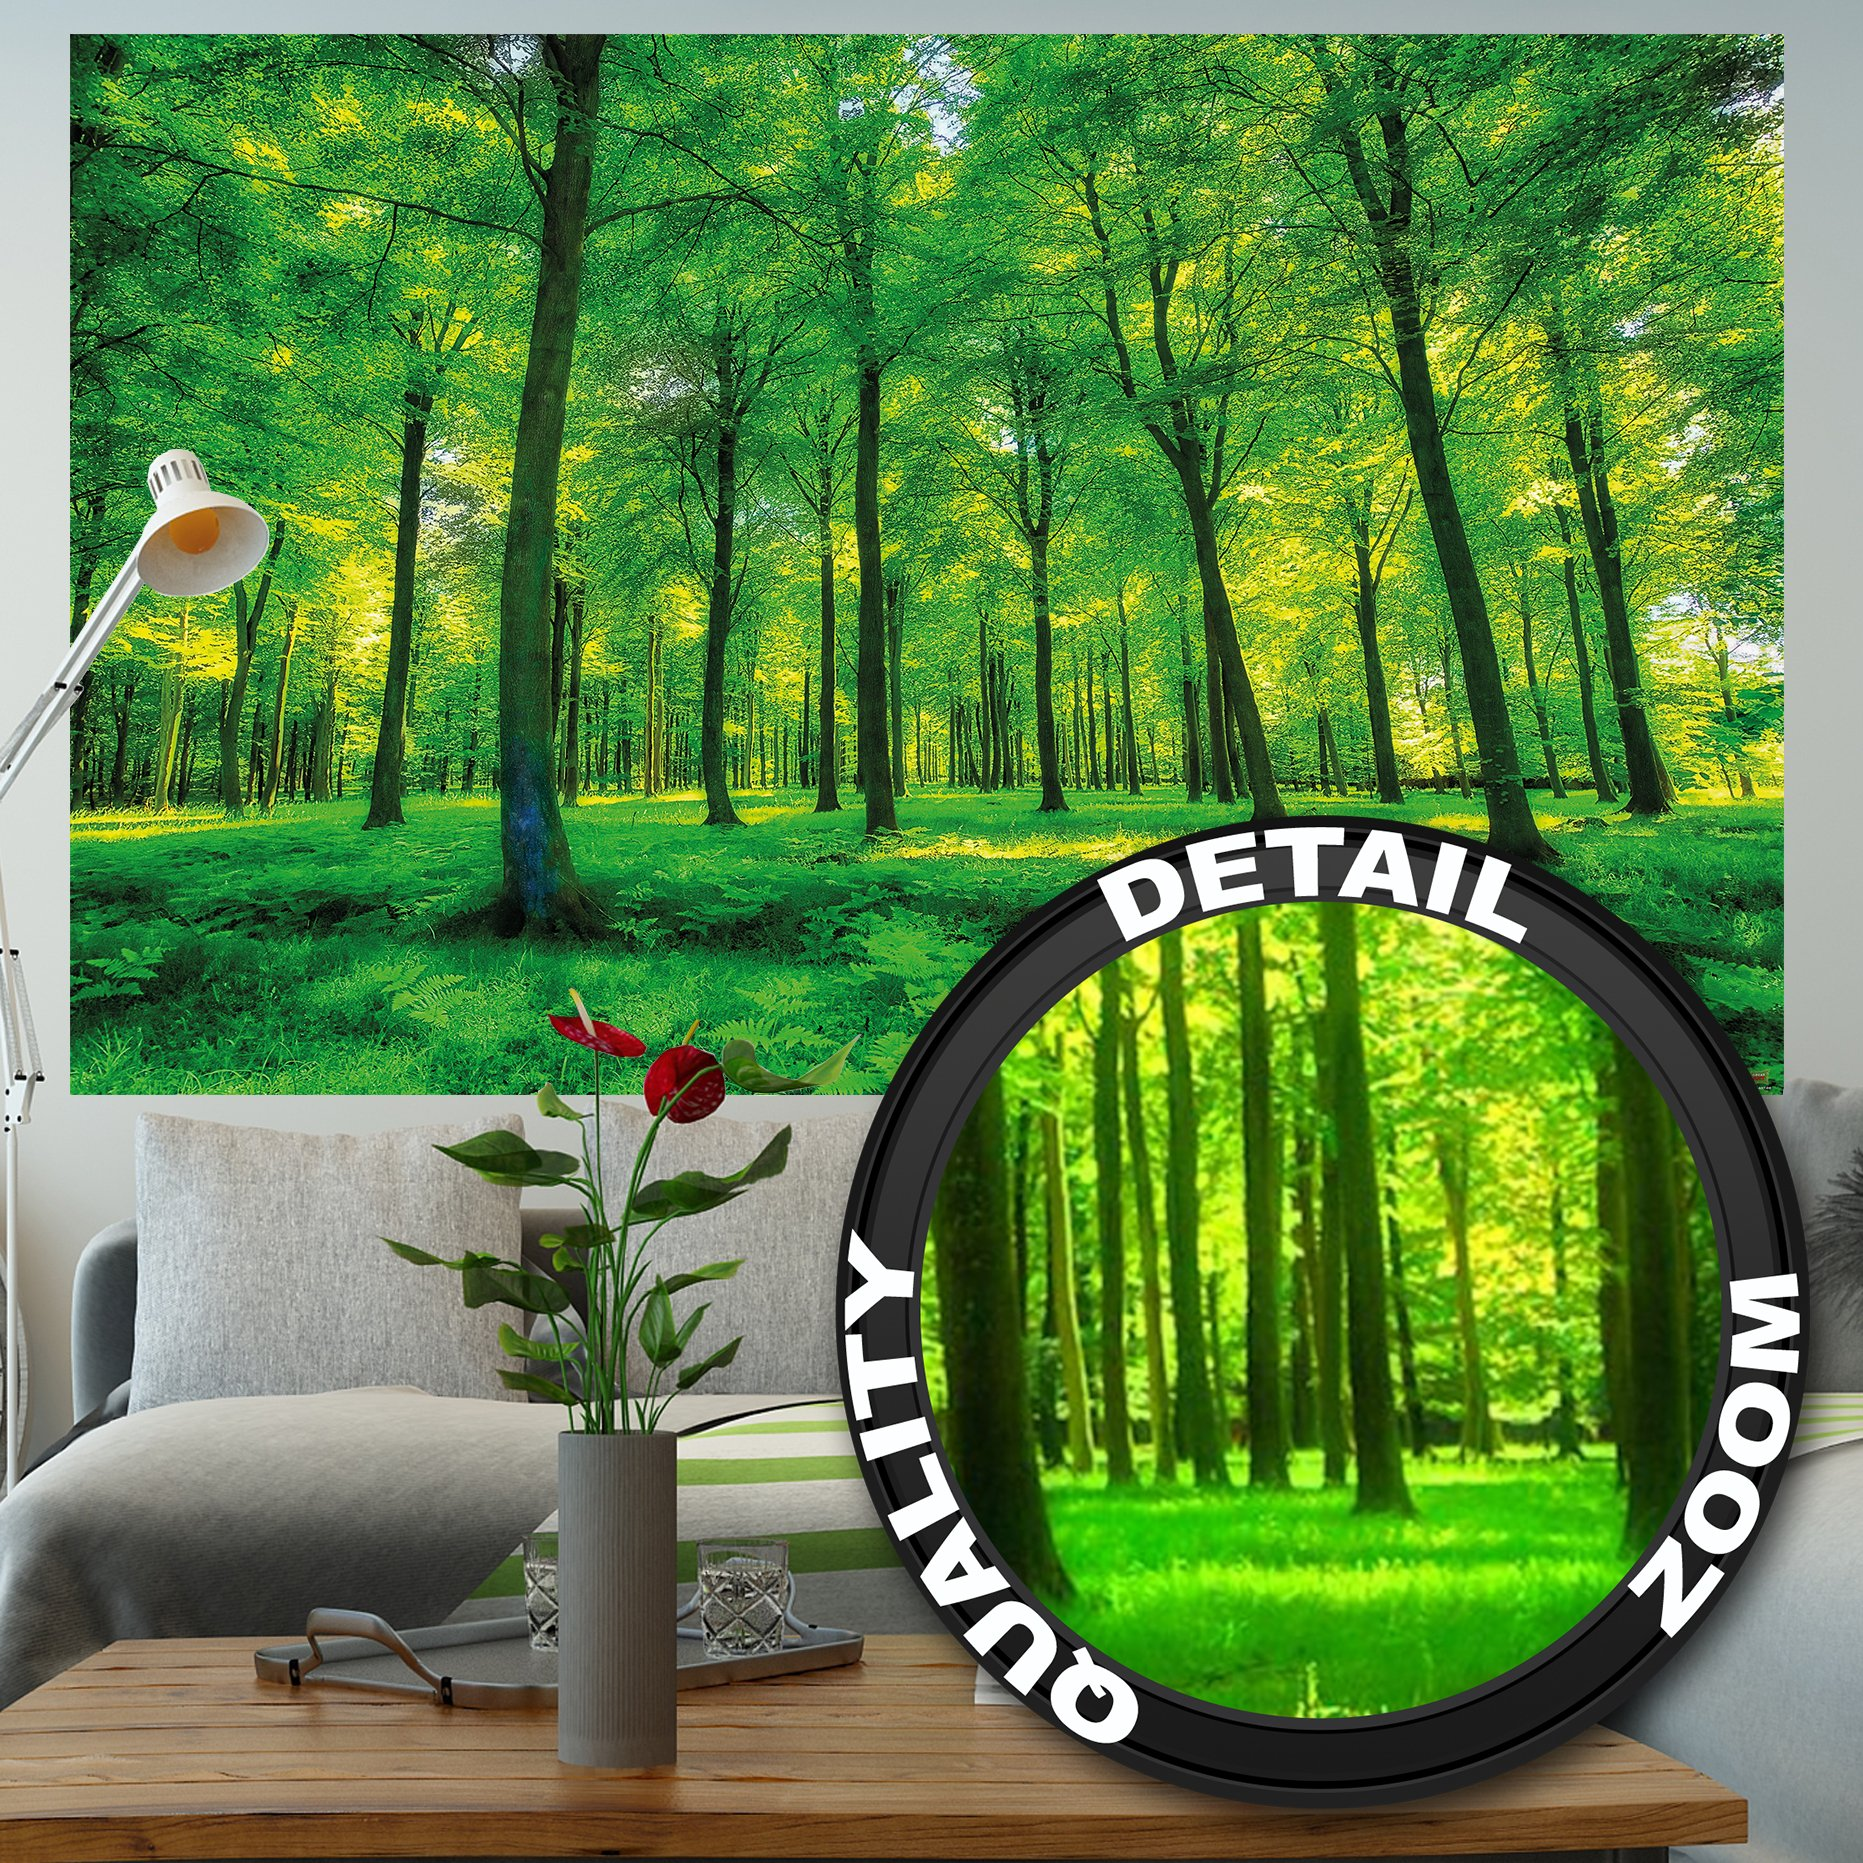 GREAT ART Wallpaper Trees Forest – Nature Wall Photo Decoration Natural Landscape Poster Summer Relax Sun Plants Flora Mural (82.7x55 Inch)